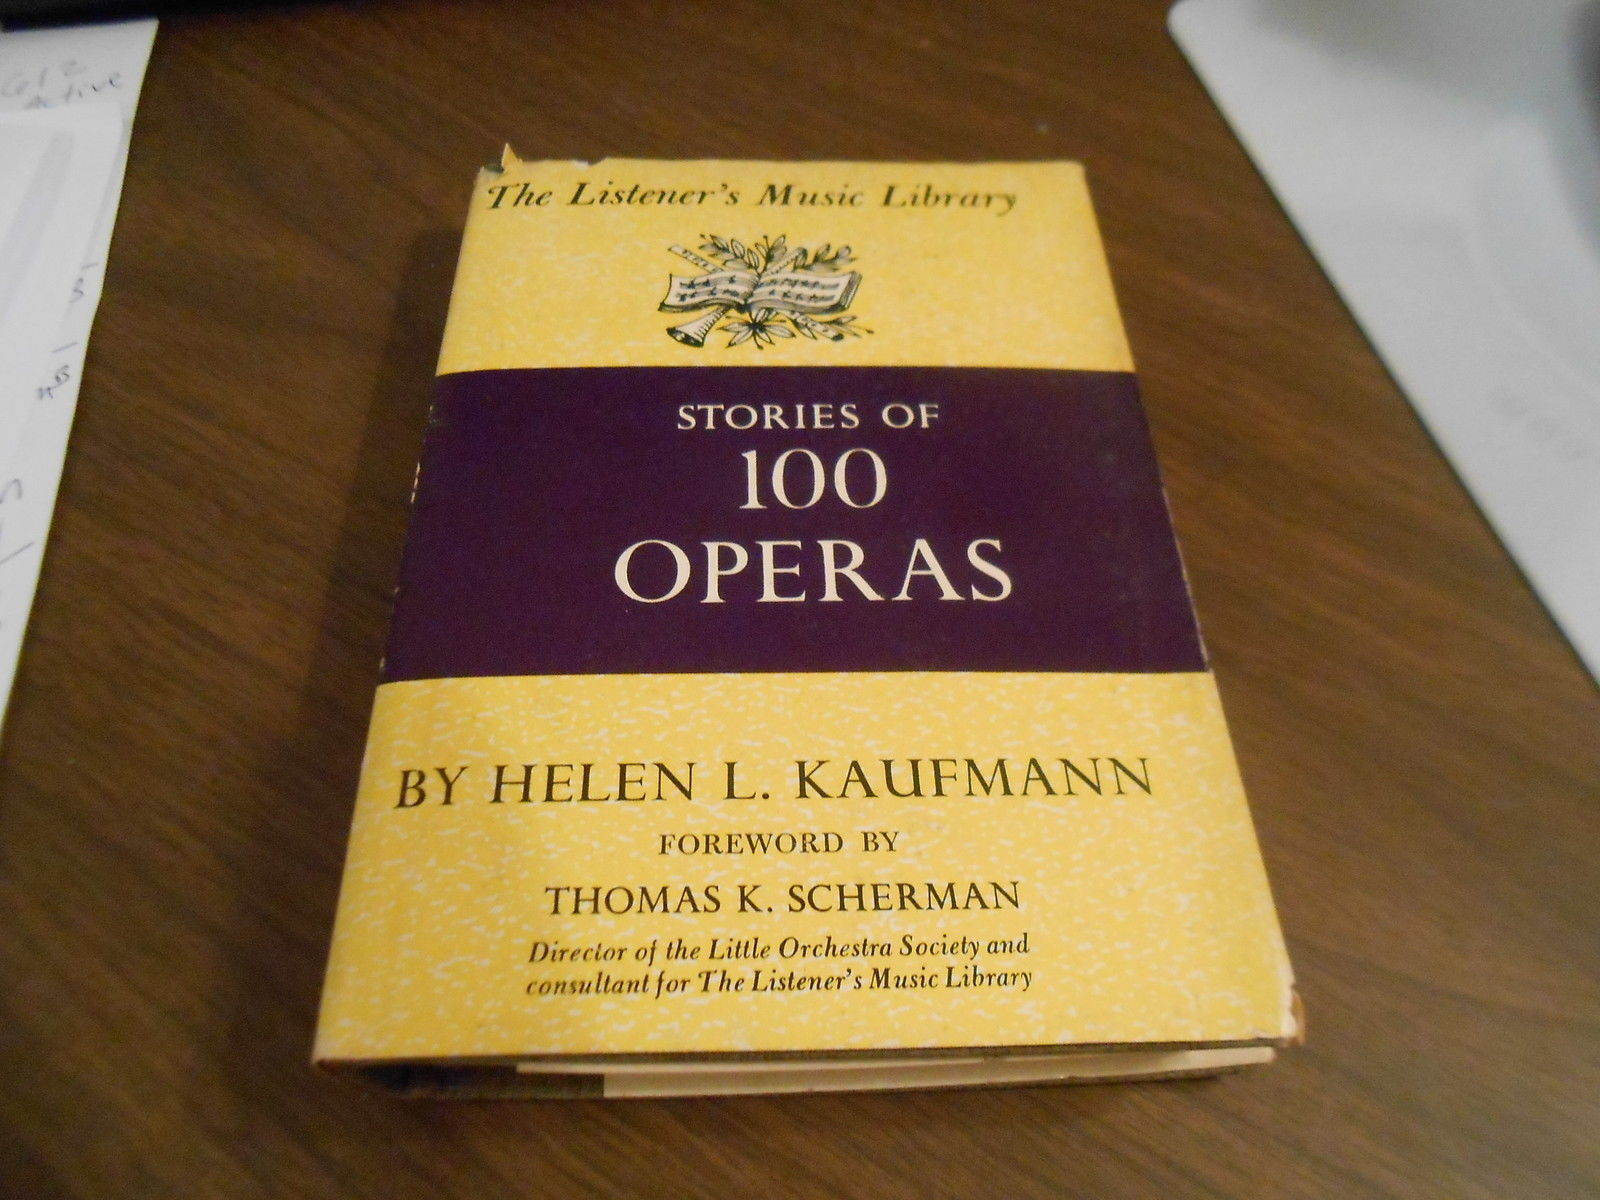 Primary image for stories of 100 operas helen kaufmann hardcover edition from 1960